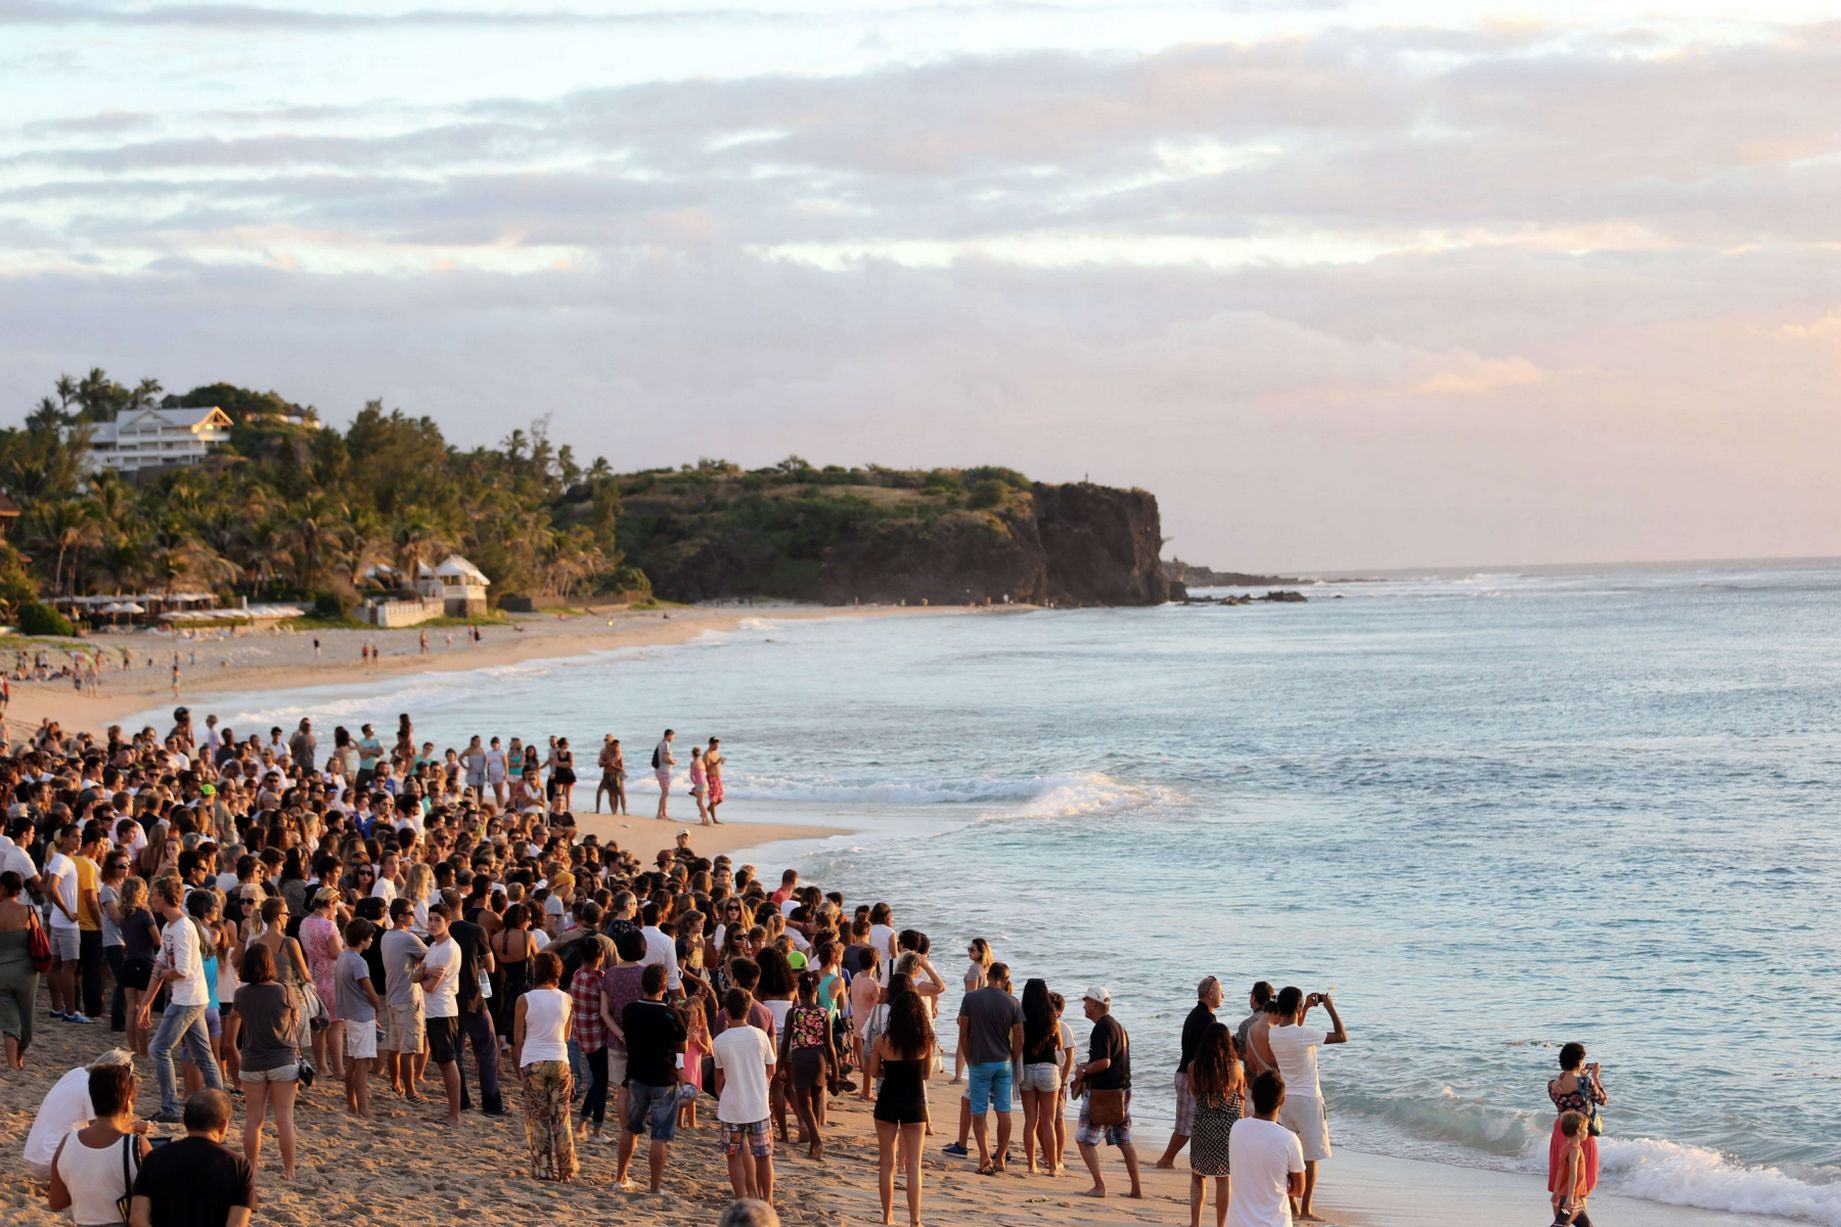 Shark attack 1 Hundreds Give Beachfront Tribute To Young Surfing Champ Killed By Shark